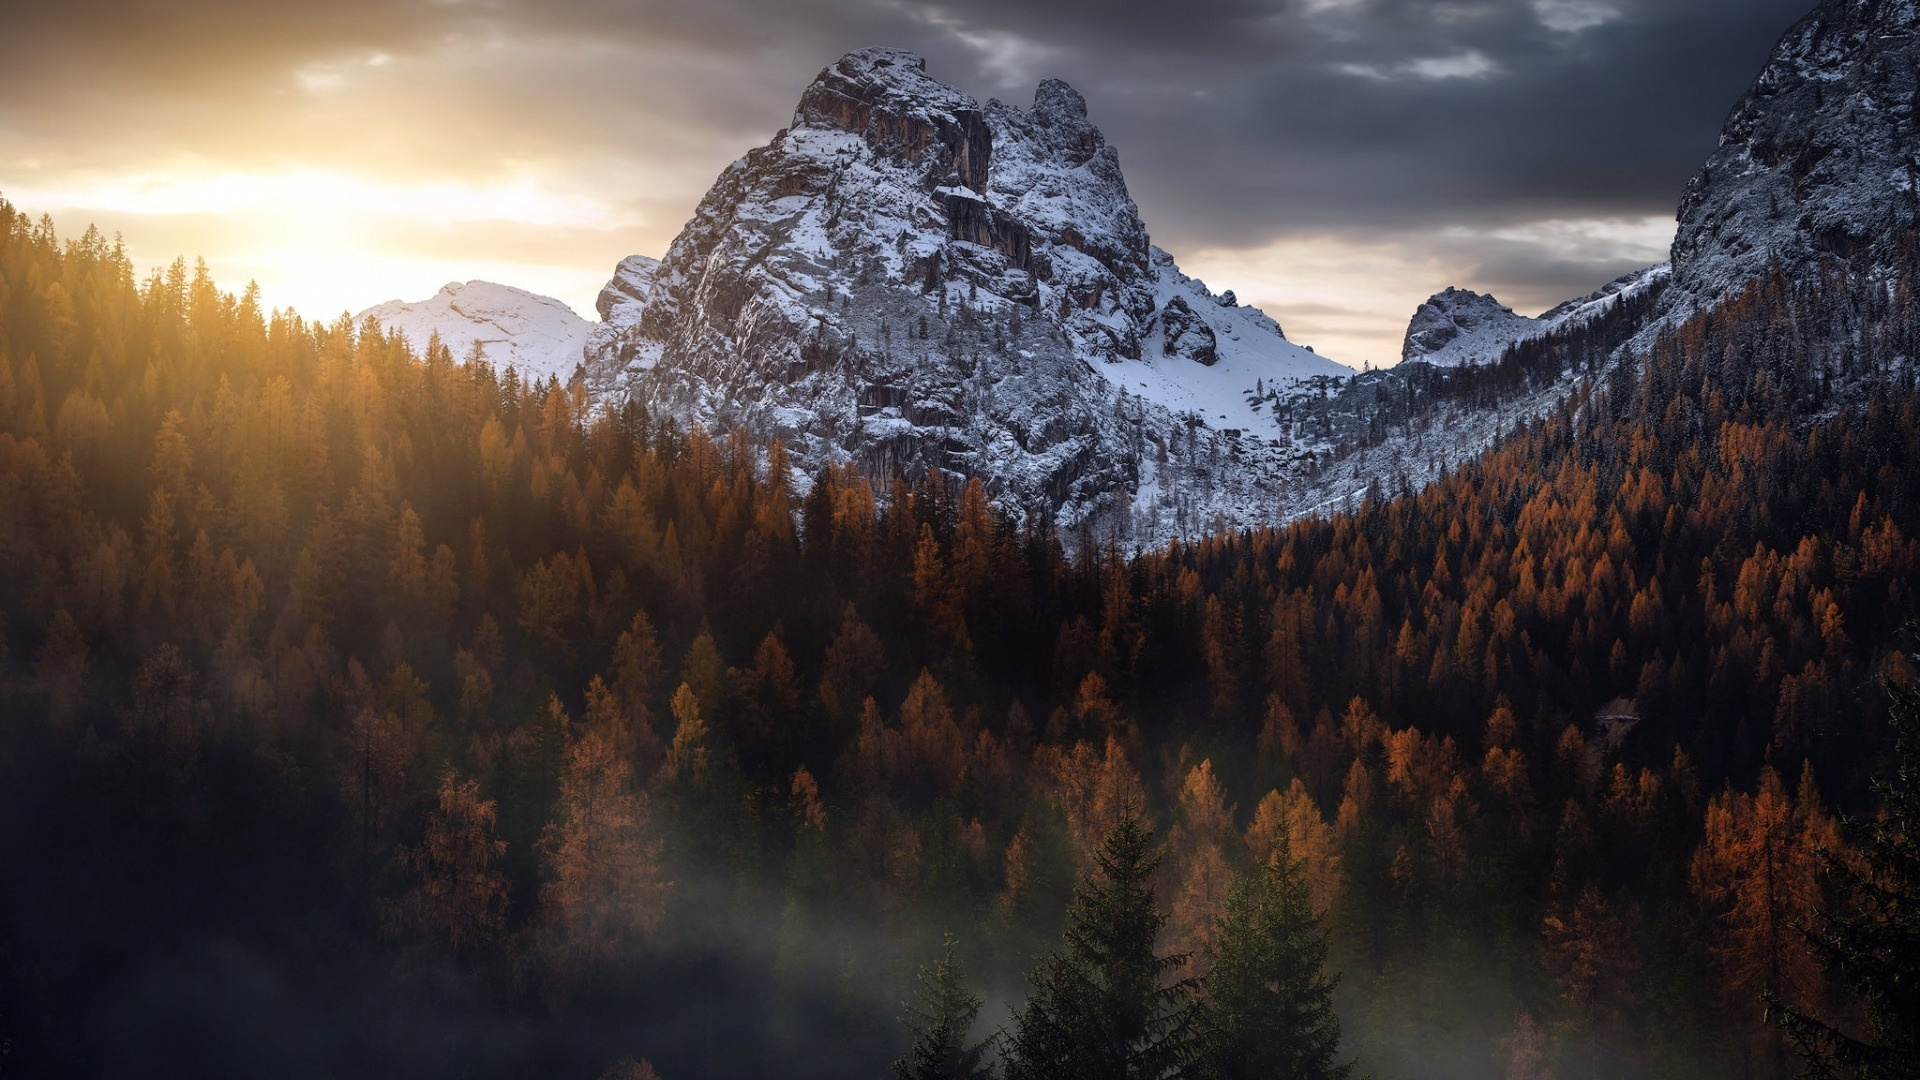 Mountains And Forest In Fog wallpaper photo hd